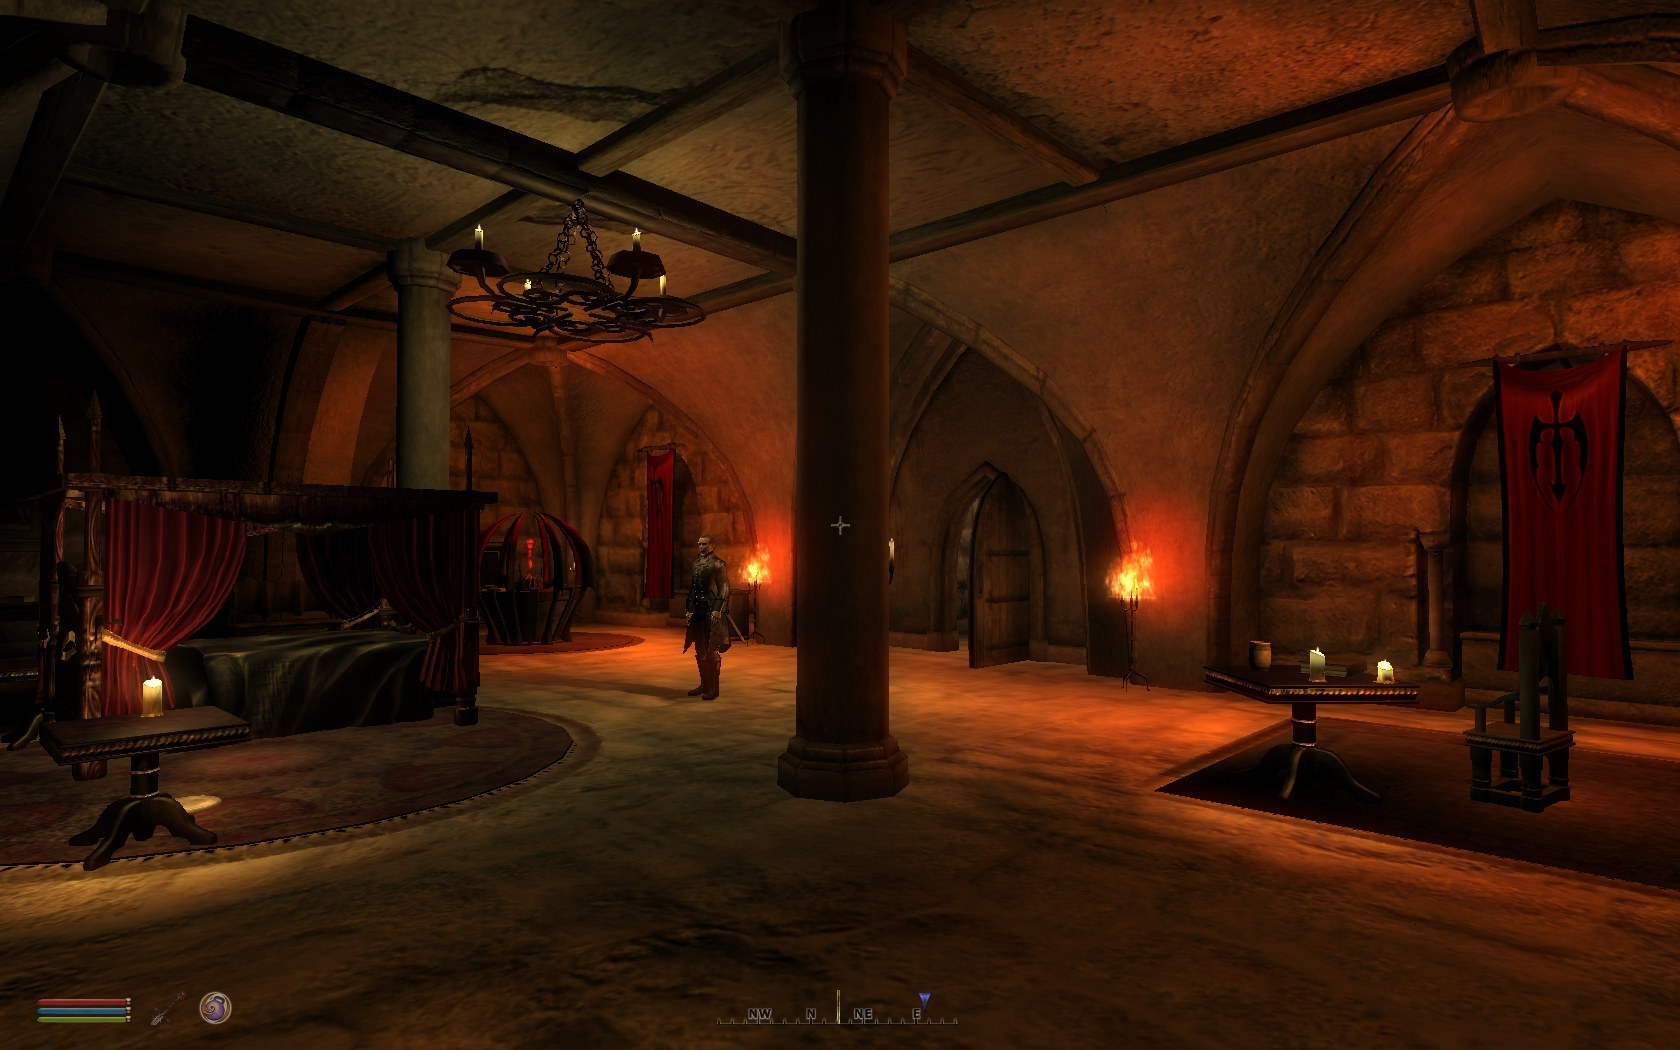 Unholy Darkness Complete Vampire Overhaul For Oblivion - Make-your-room-look-like-a-vampires-room